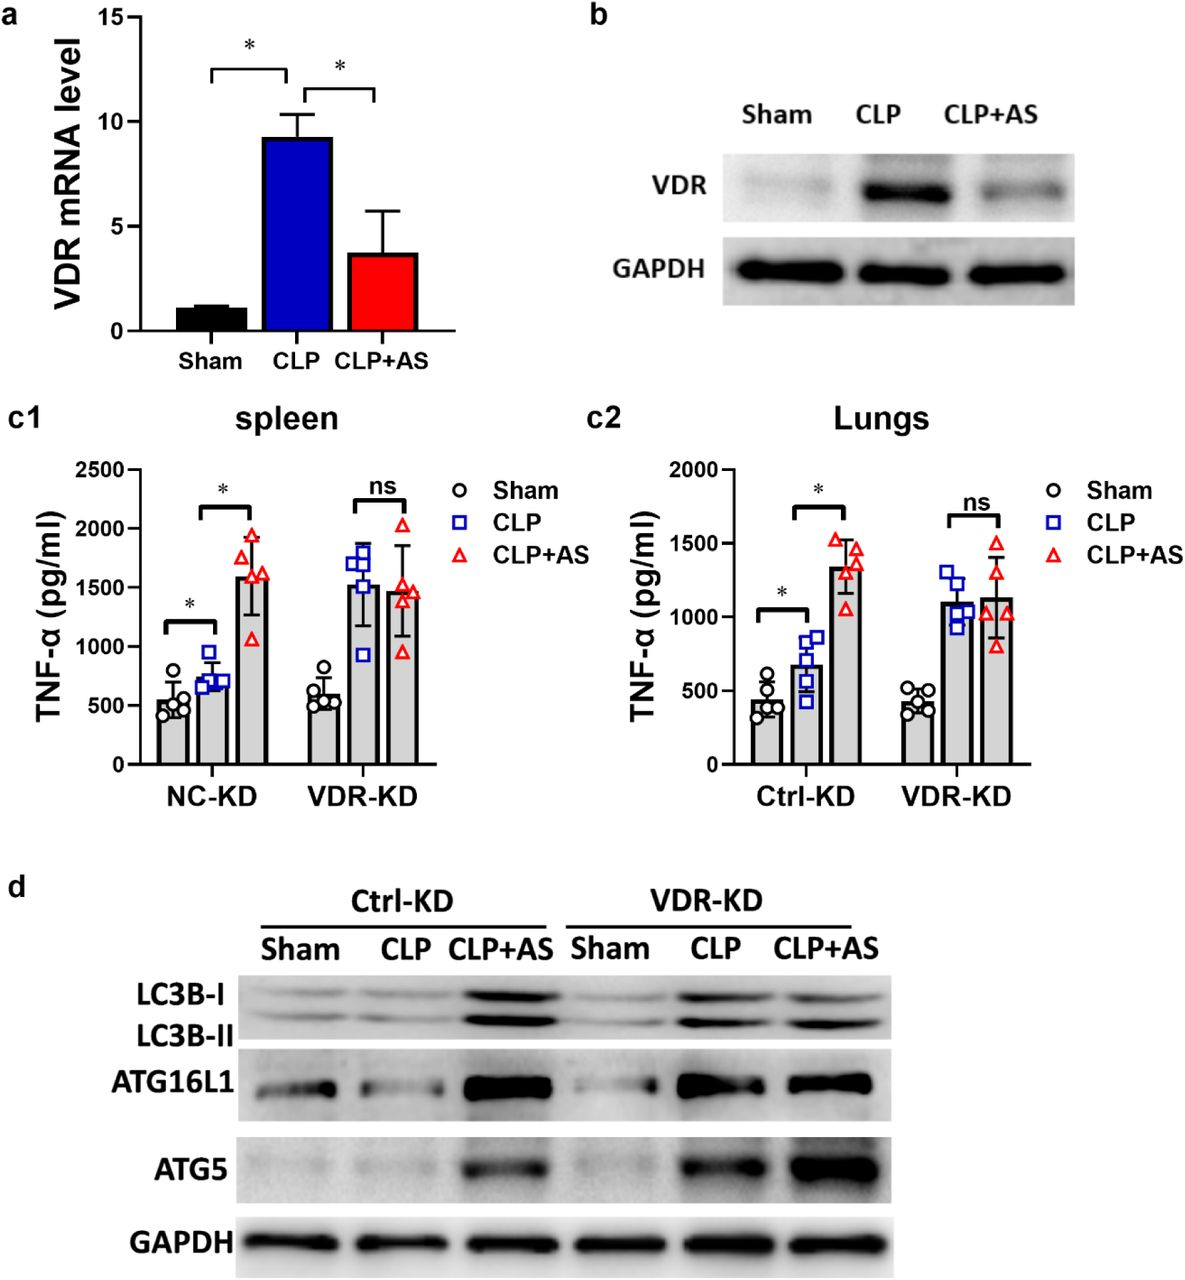 Knockdown of VDR results in the loss of the effect of AS in vivo . (a) Effect of AS on VDR mRNA level of PMs from CLP mice (n = 5). (b) Effect of AS on VDR protein level of PMs from CLP mice. (c) Change in the effect of AS on the level of TNF-α and IL-6 in the spleen (c1) and lungs (c2) from VDR-KD mice (n = 5). (d) Changes in the level of LC3B-I, LC3B-II, ATG16L, and ATG5 protein expressions in the spleens of VDR-KD mice. (* P